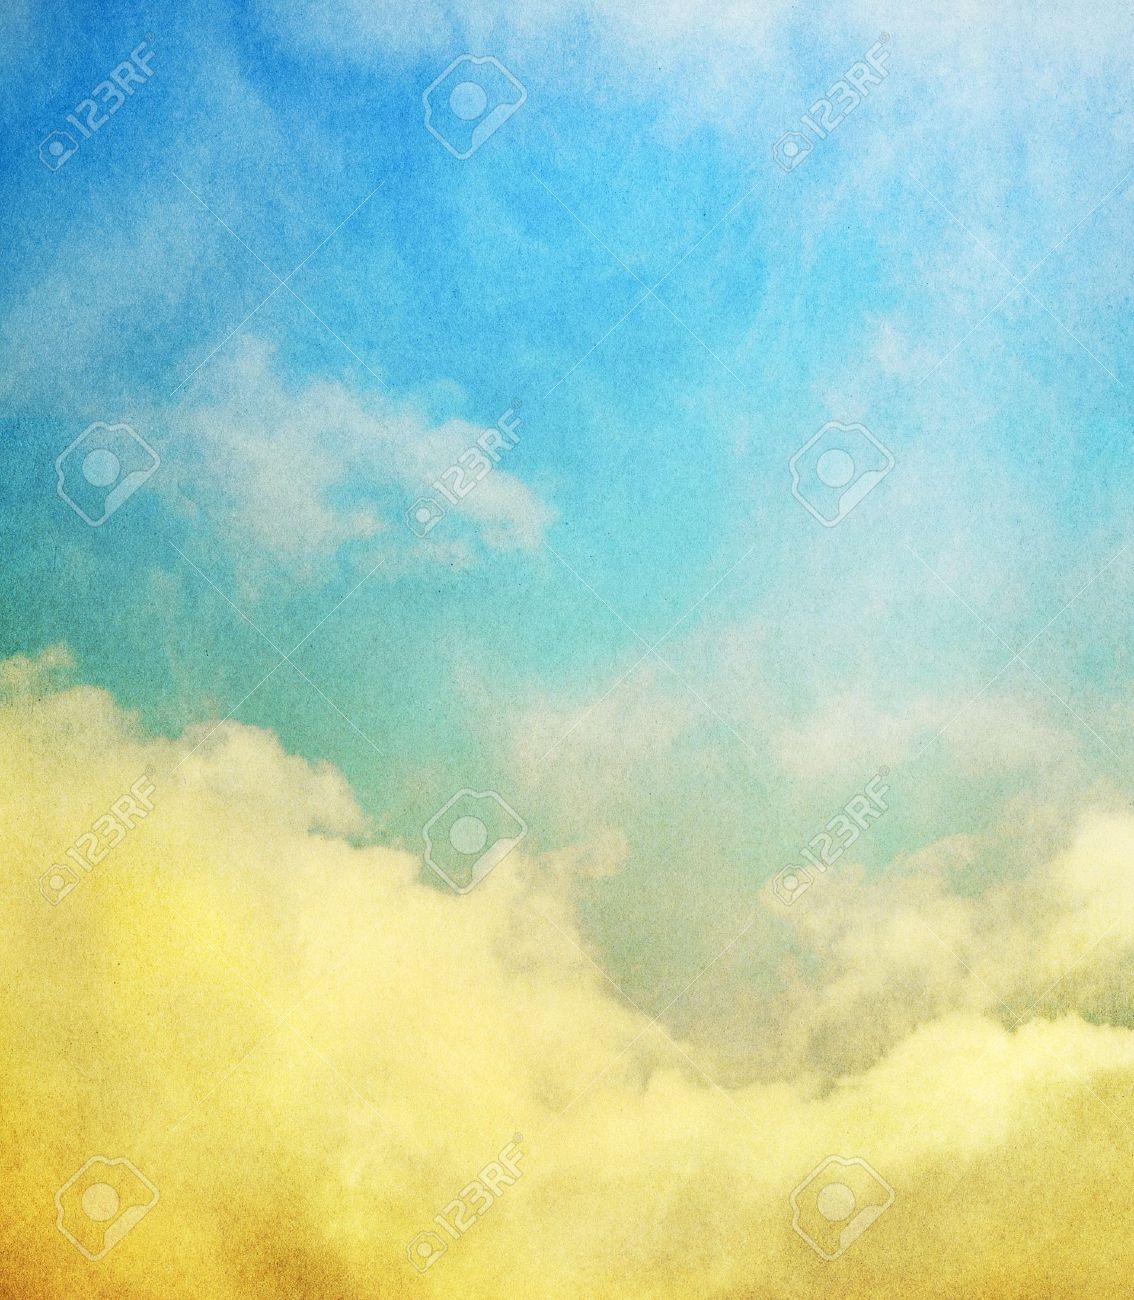 Fog, mist, and clouds with a yellow to blue gradient   Image has a textured paper overlay and grain pattern visible at 100 Stock Photo - 17251798